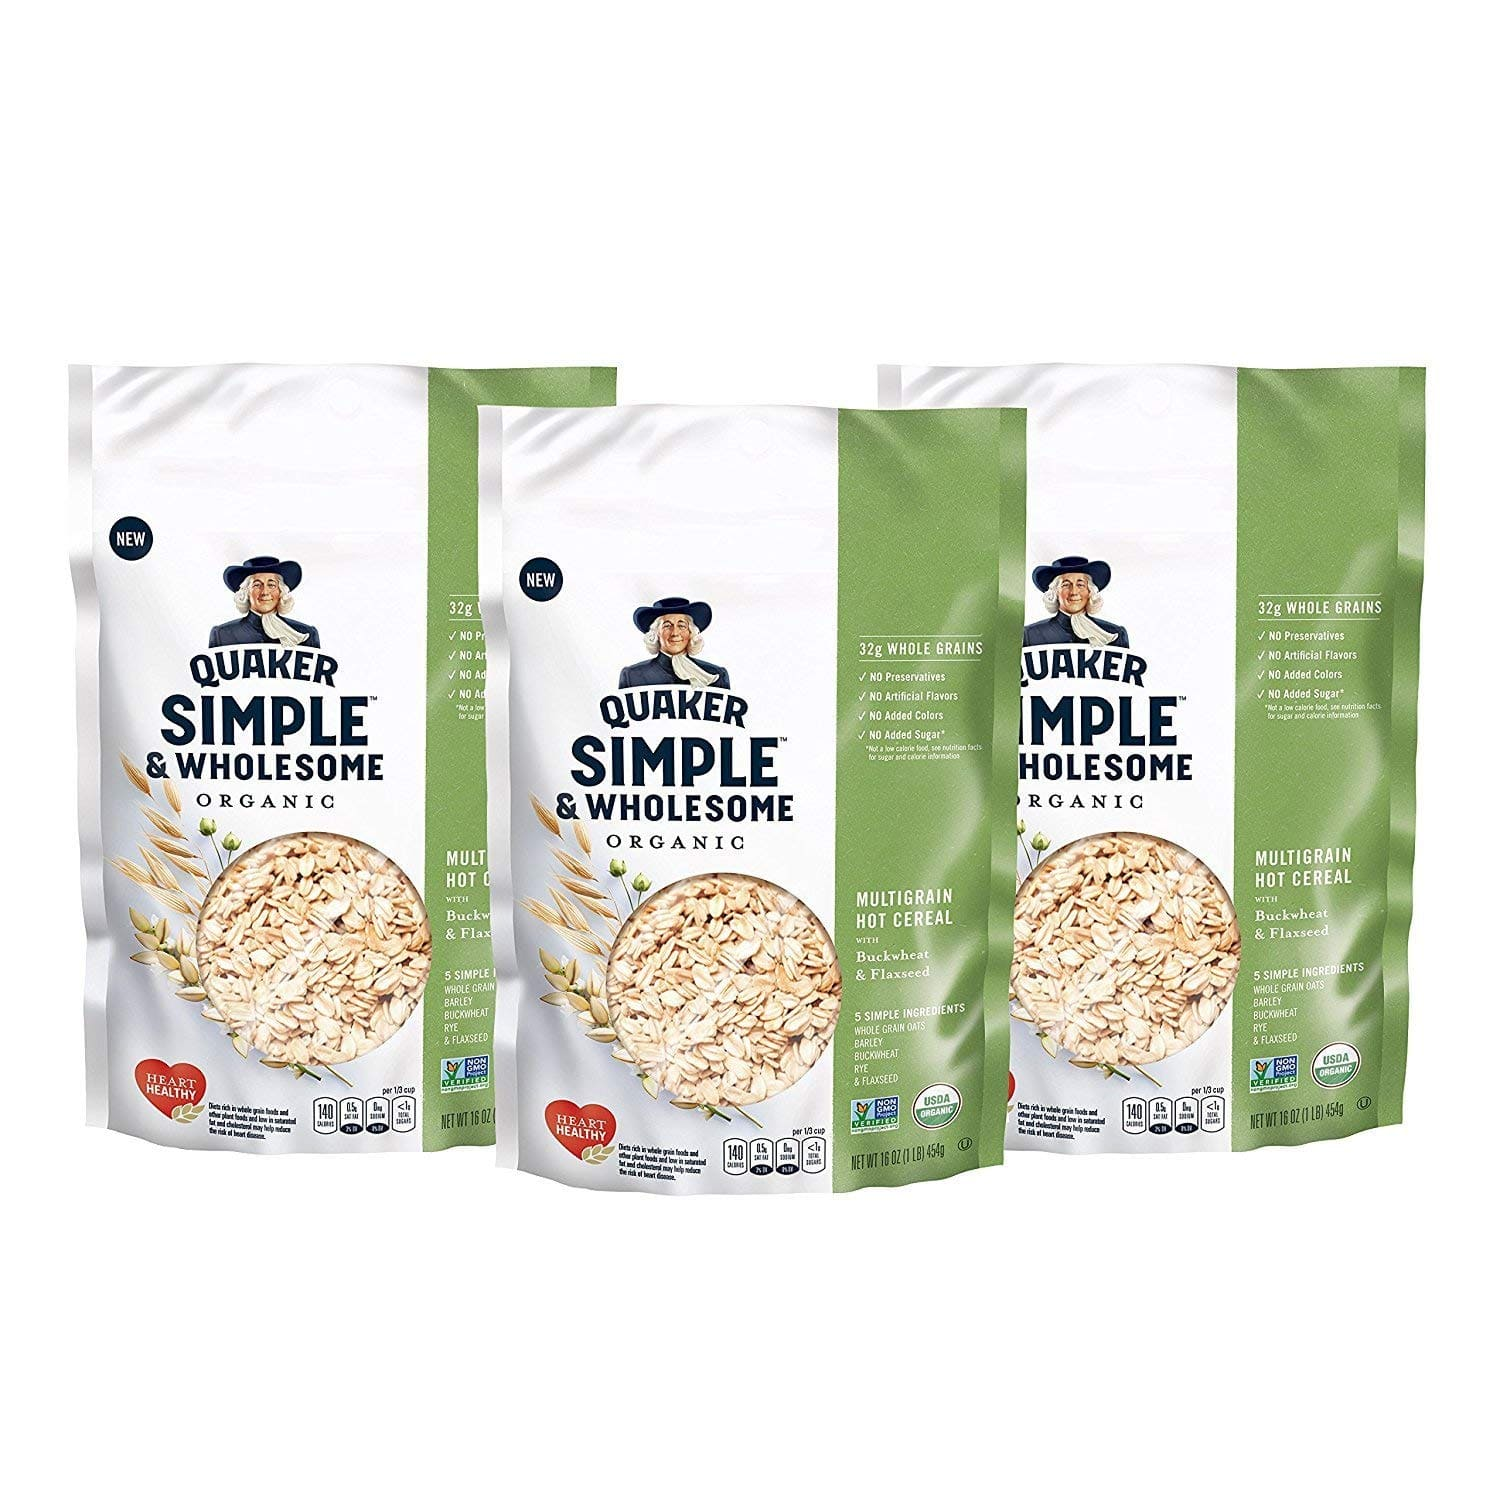 Quaker Simple & Wholesome Organic Multigrain Hot Cereal, Oats with Barley, Buckwheat, Rye & Flaxseed, 1 lb Bags, 3 count for $7.79